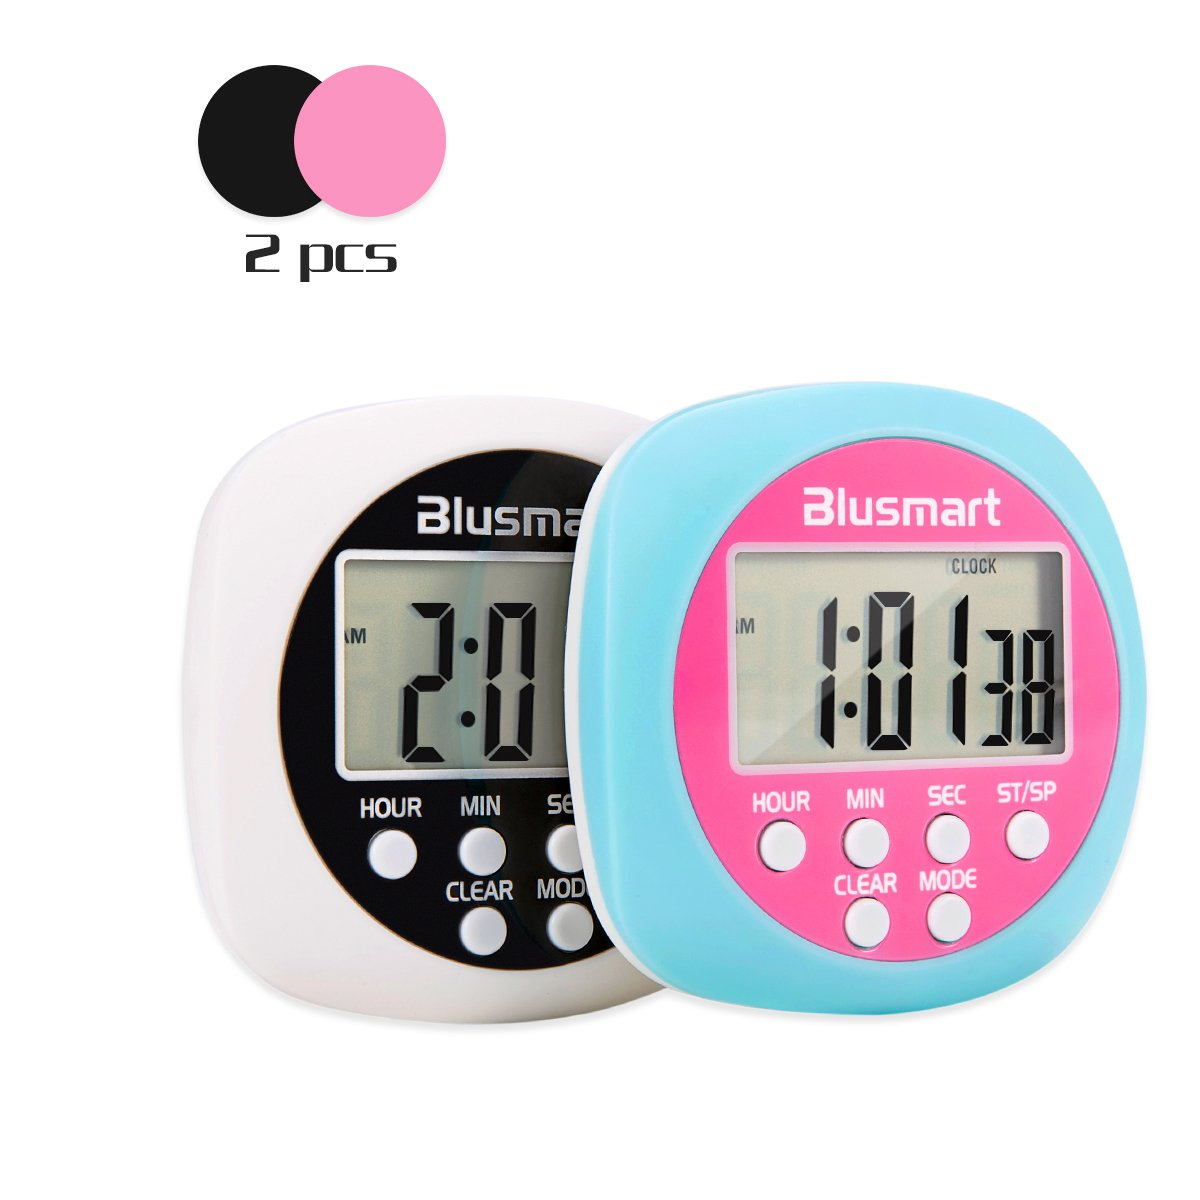 Blusmart Digital Kitchen Timer - Large LCD Display, Countdown Count-up, Loud Alarm, Simple Operation - Old and Children Can Use Easily, for Kitchen, Homework, Exercise etc (Battery Included)